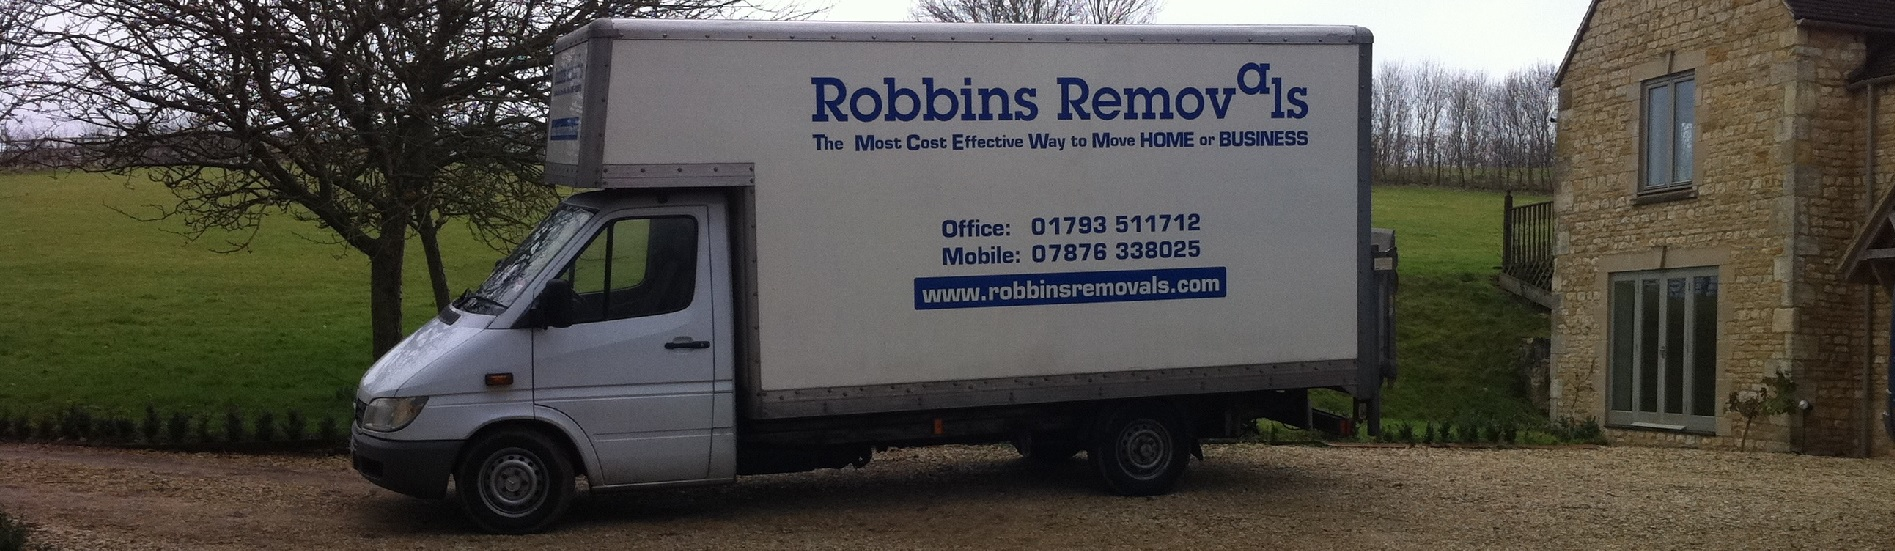 Removals Swindon with Robbins removals - removal companies swindon